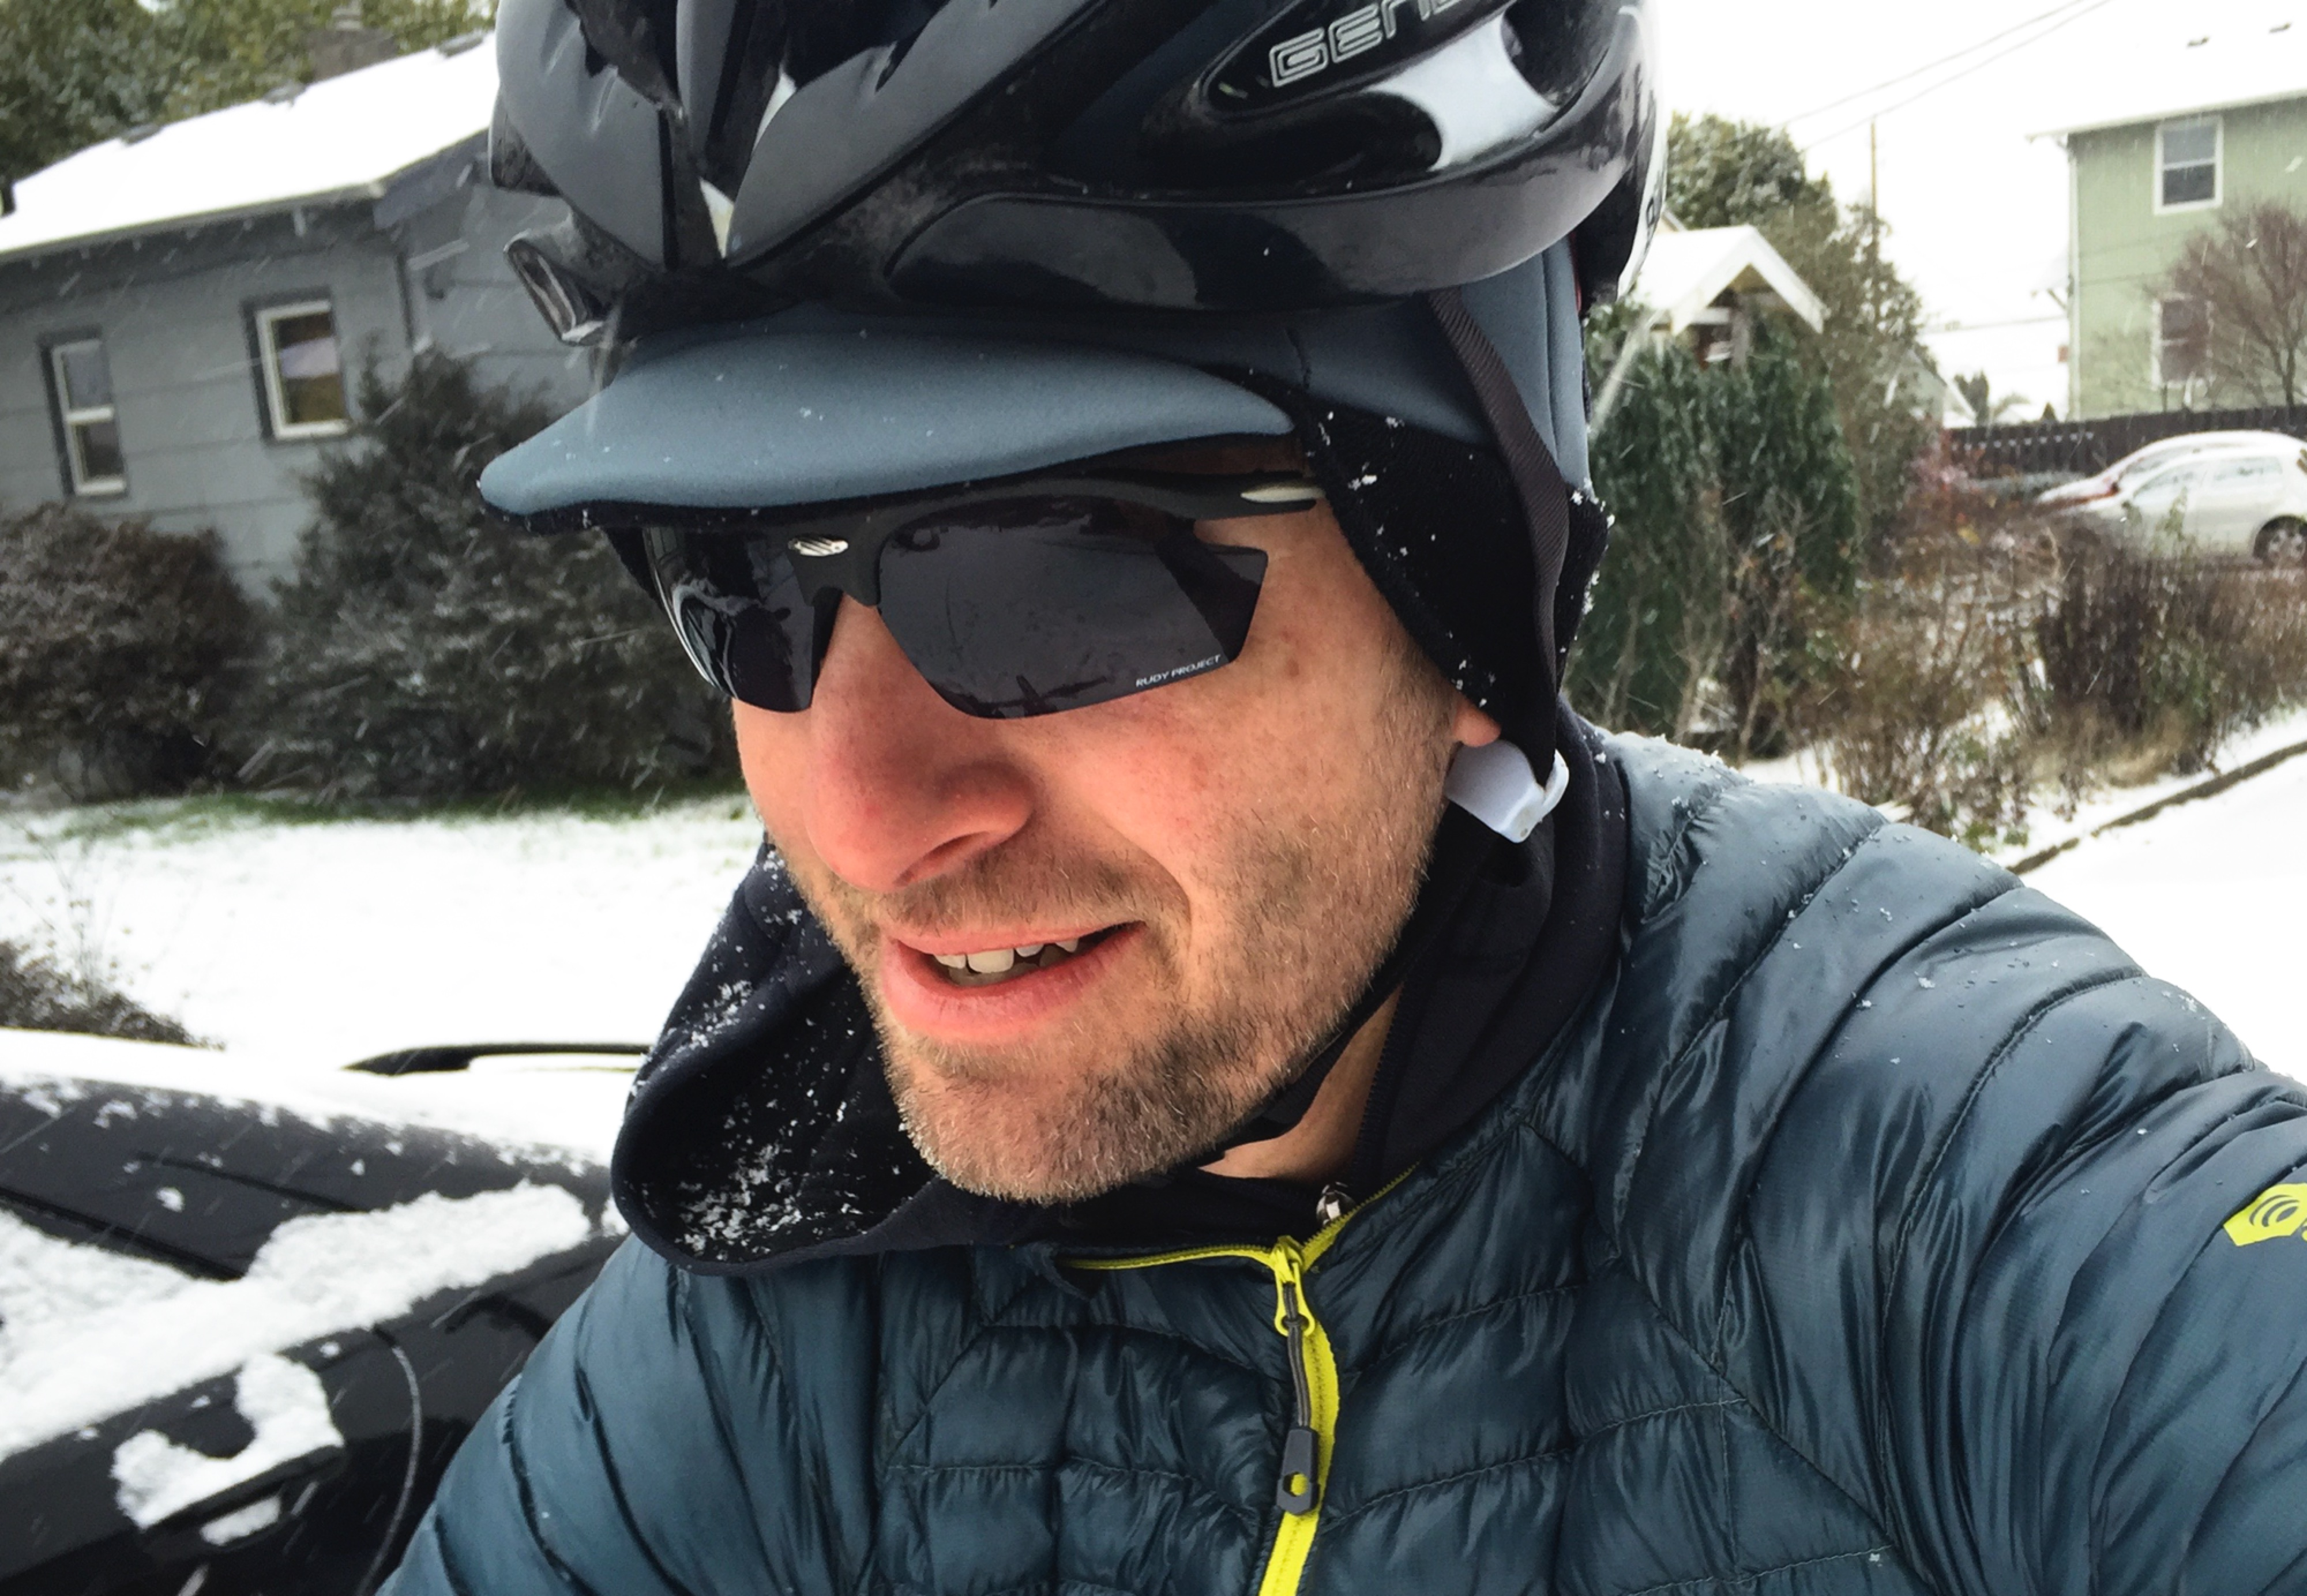 Product Review A Warm Winter Cap From Bella Capo